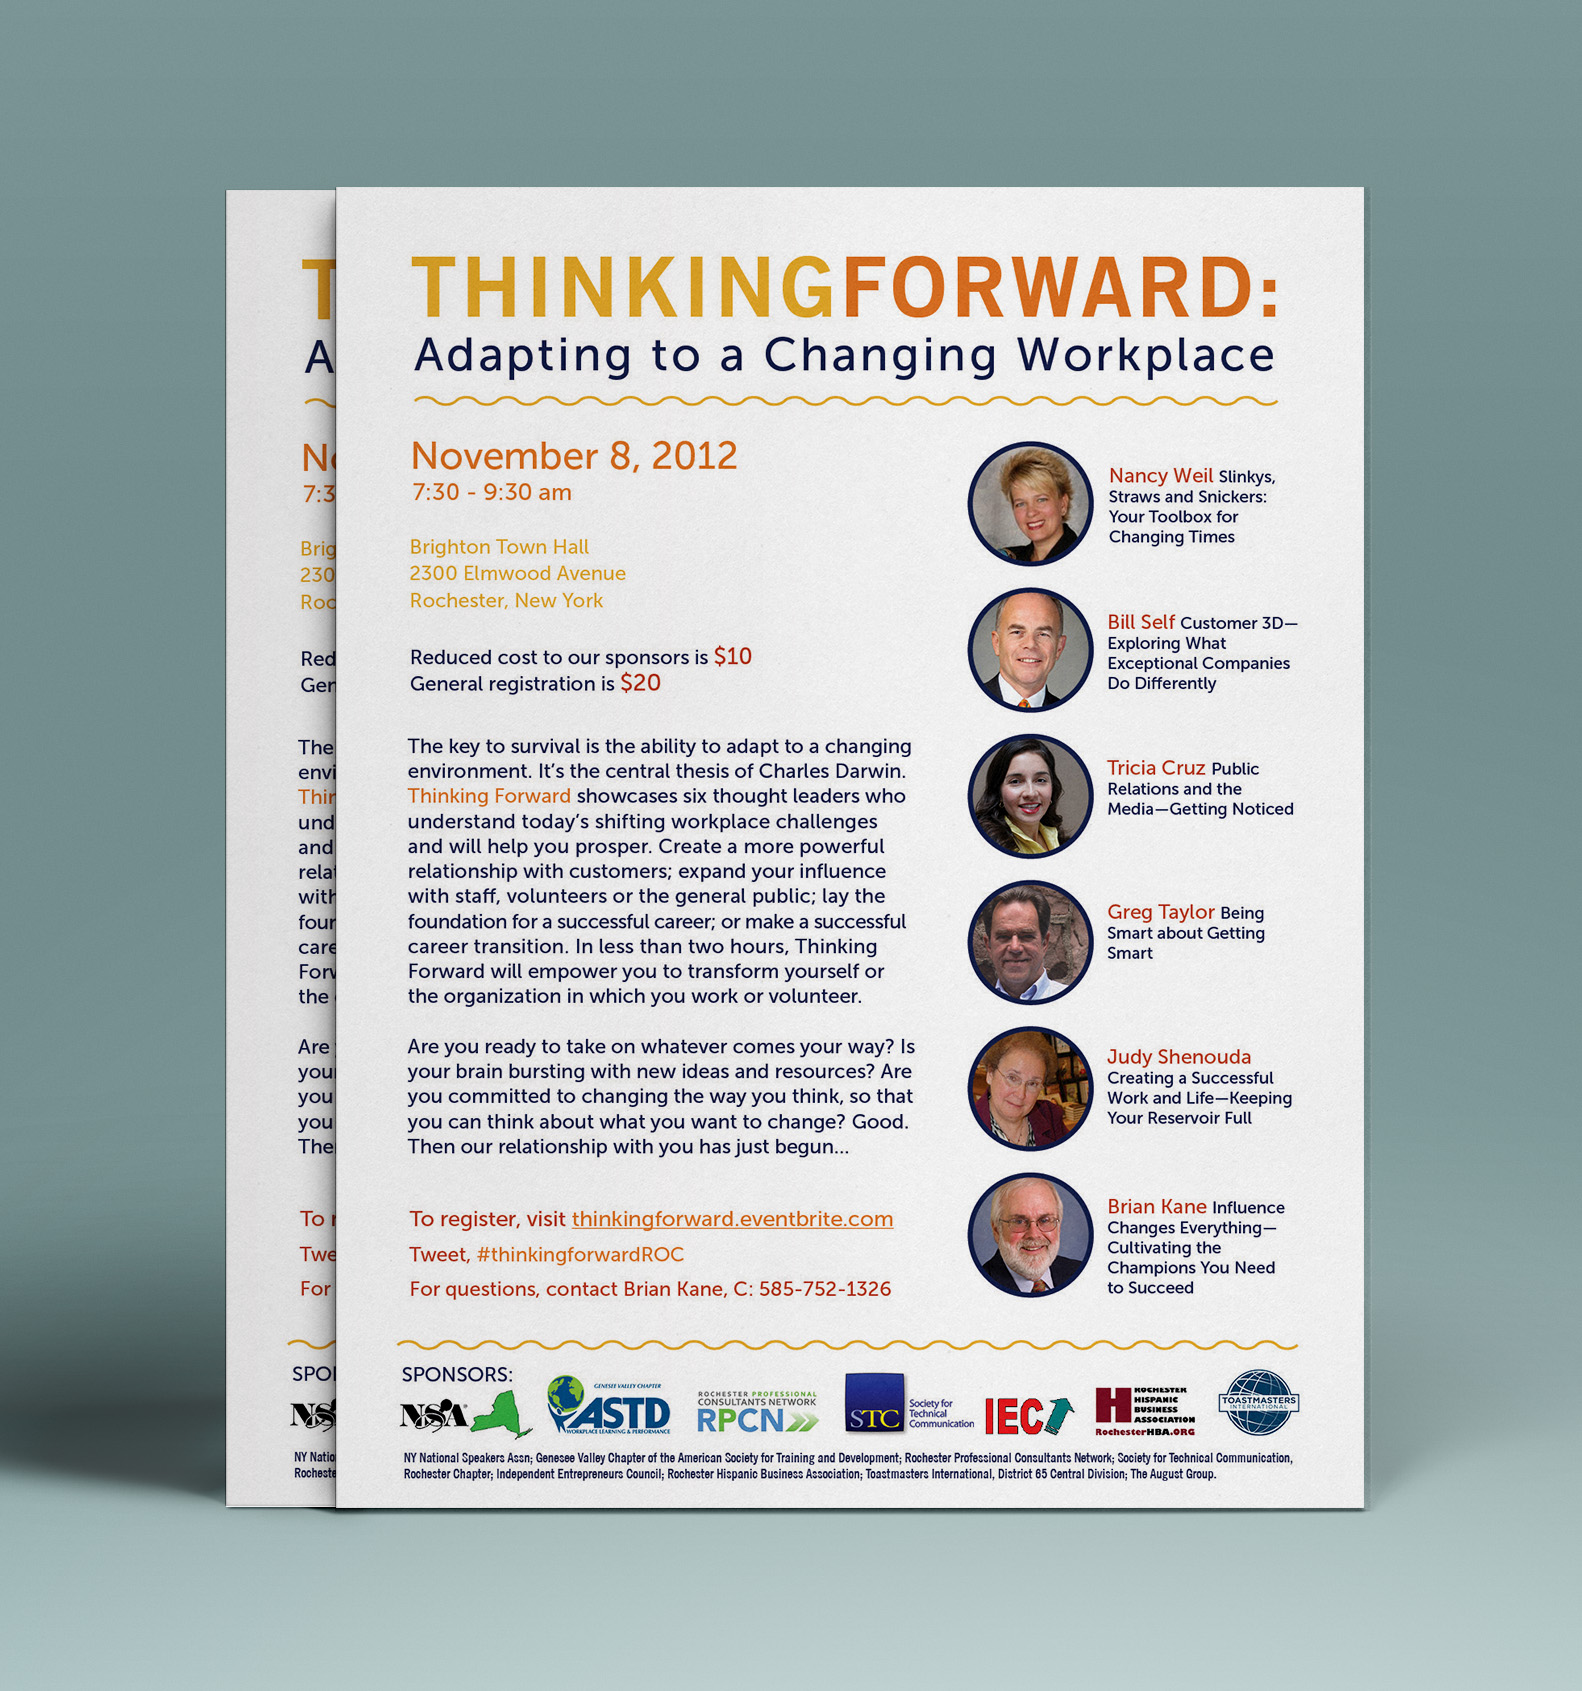 Adapting to a Changing Workplace